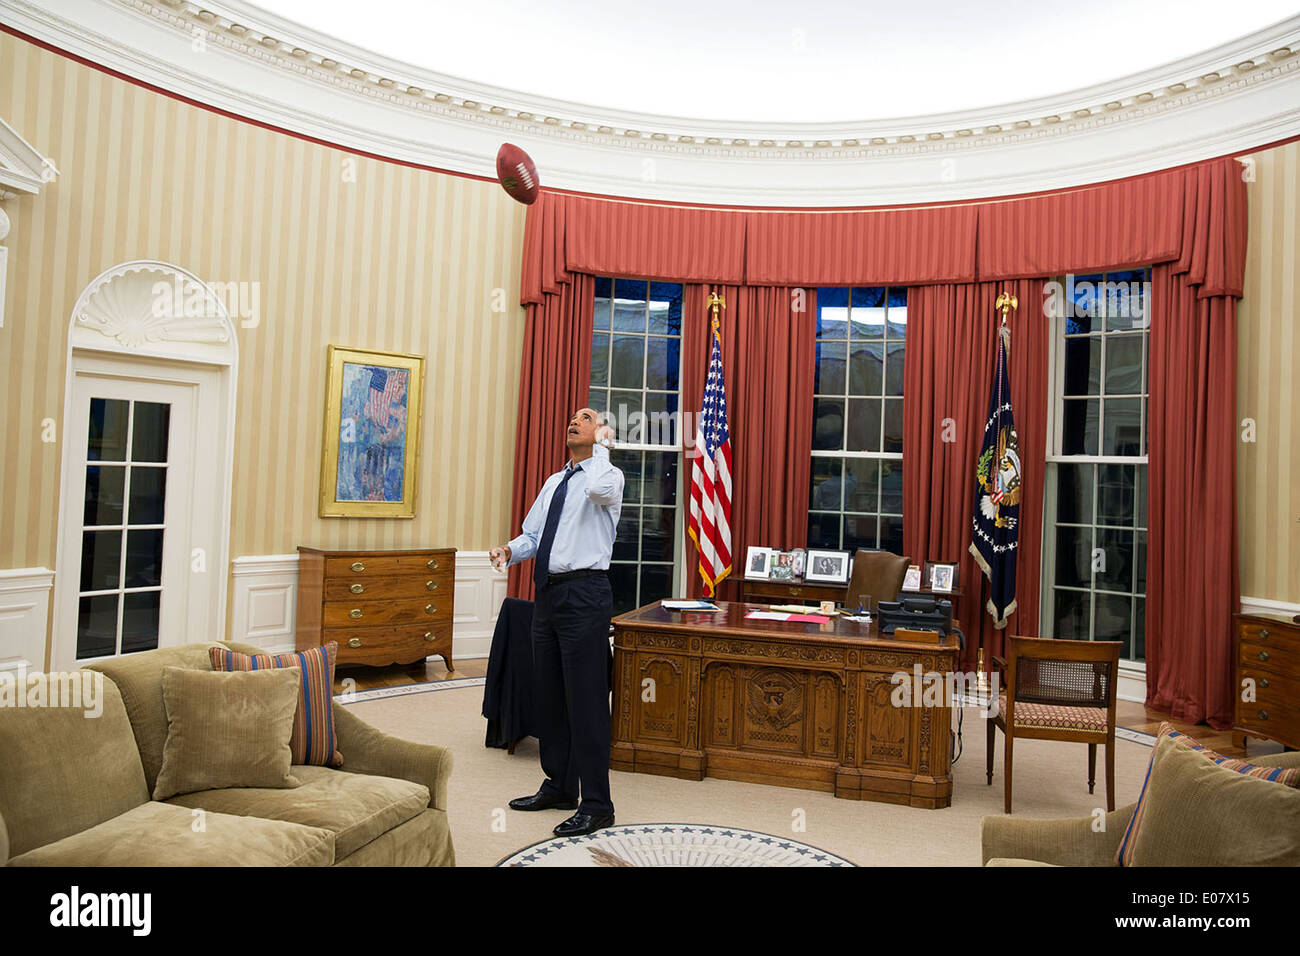 US President Barack Obama tosses a football in the Oval ...